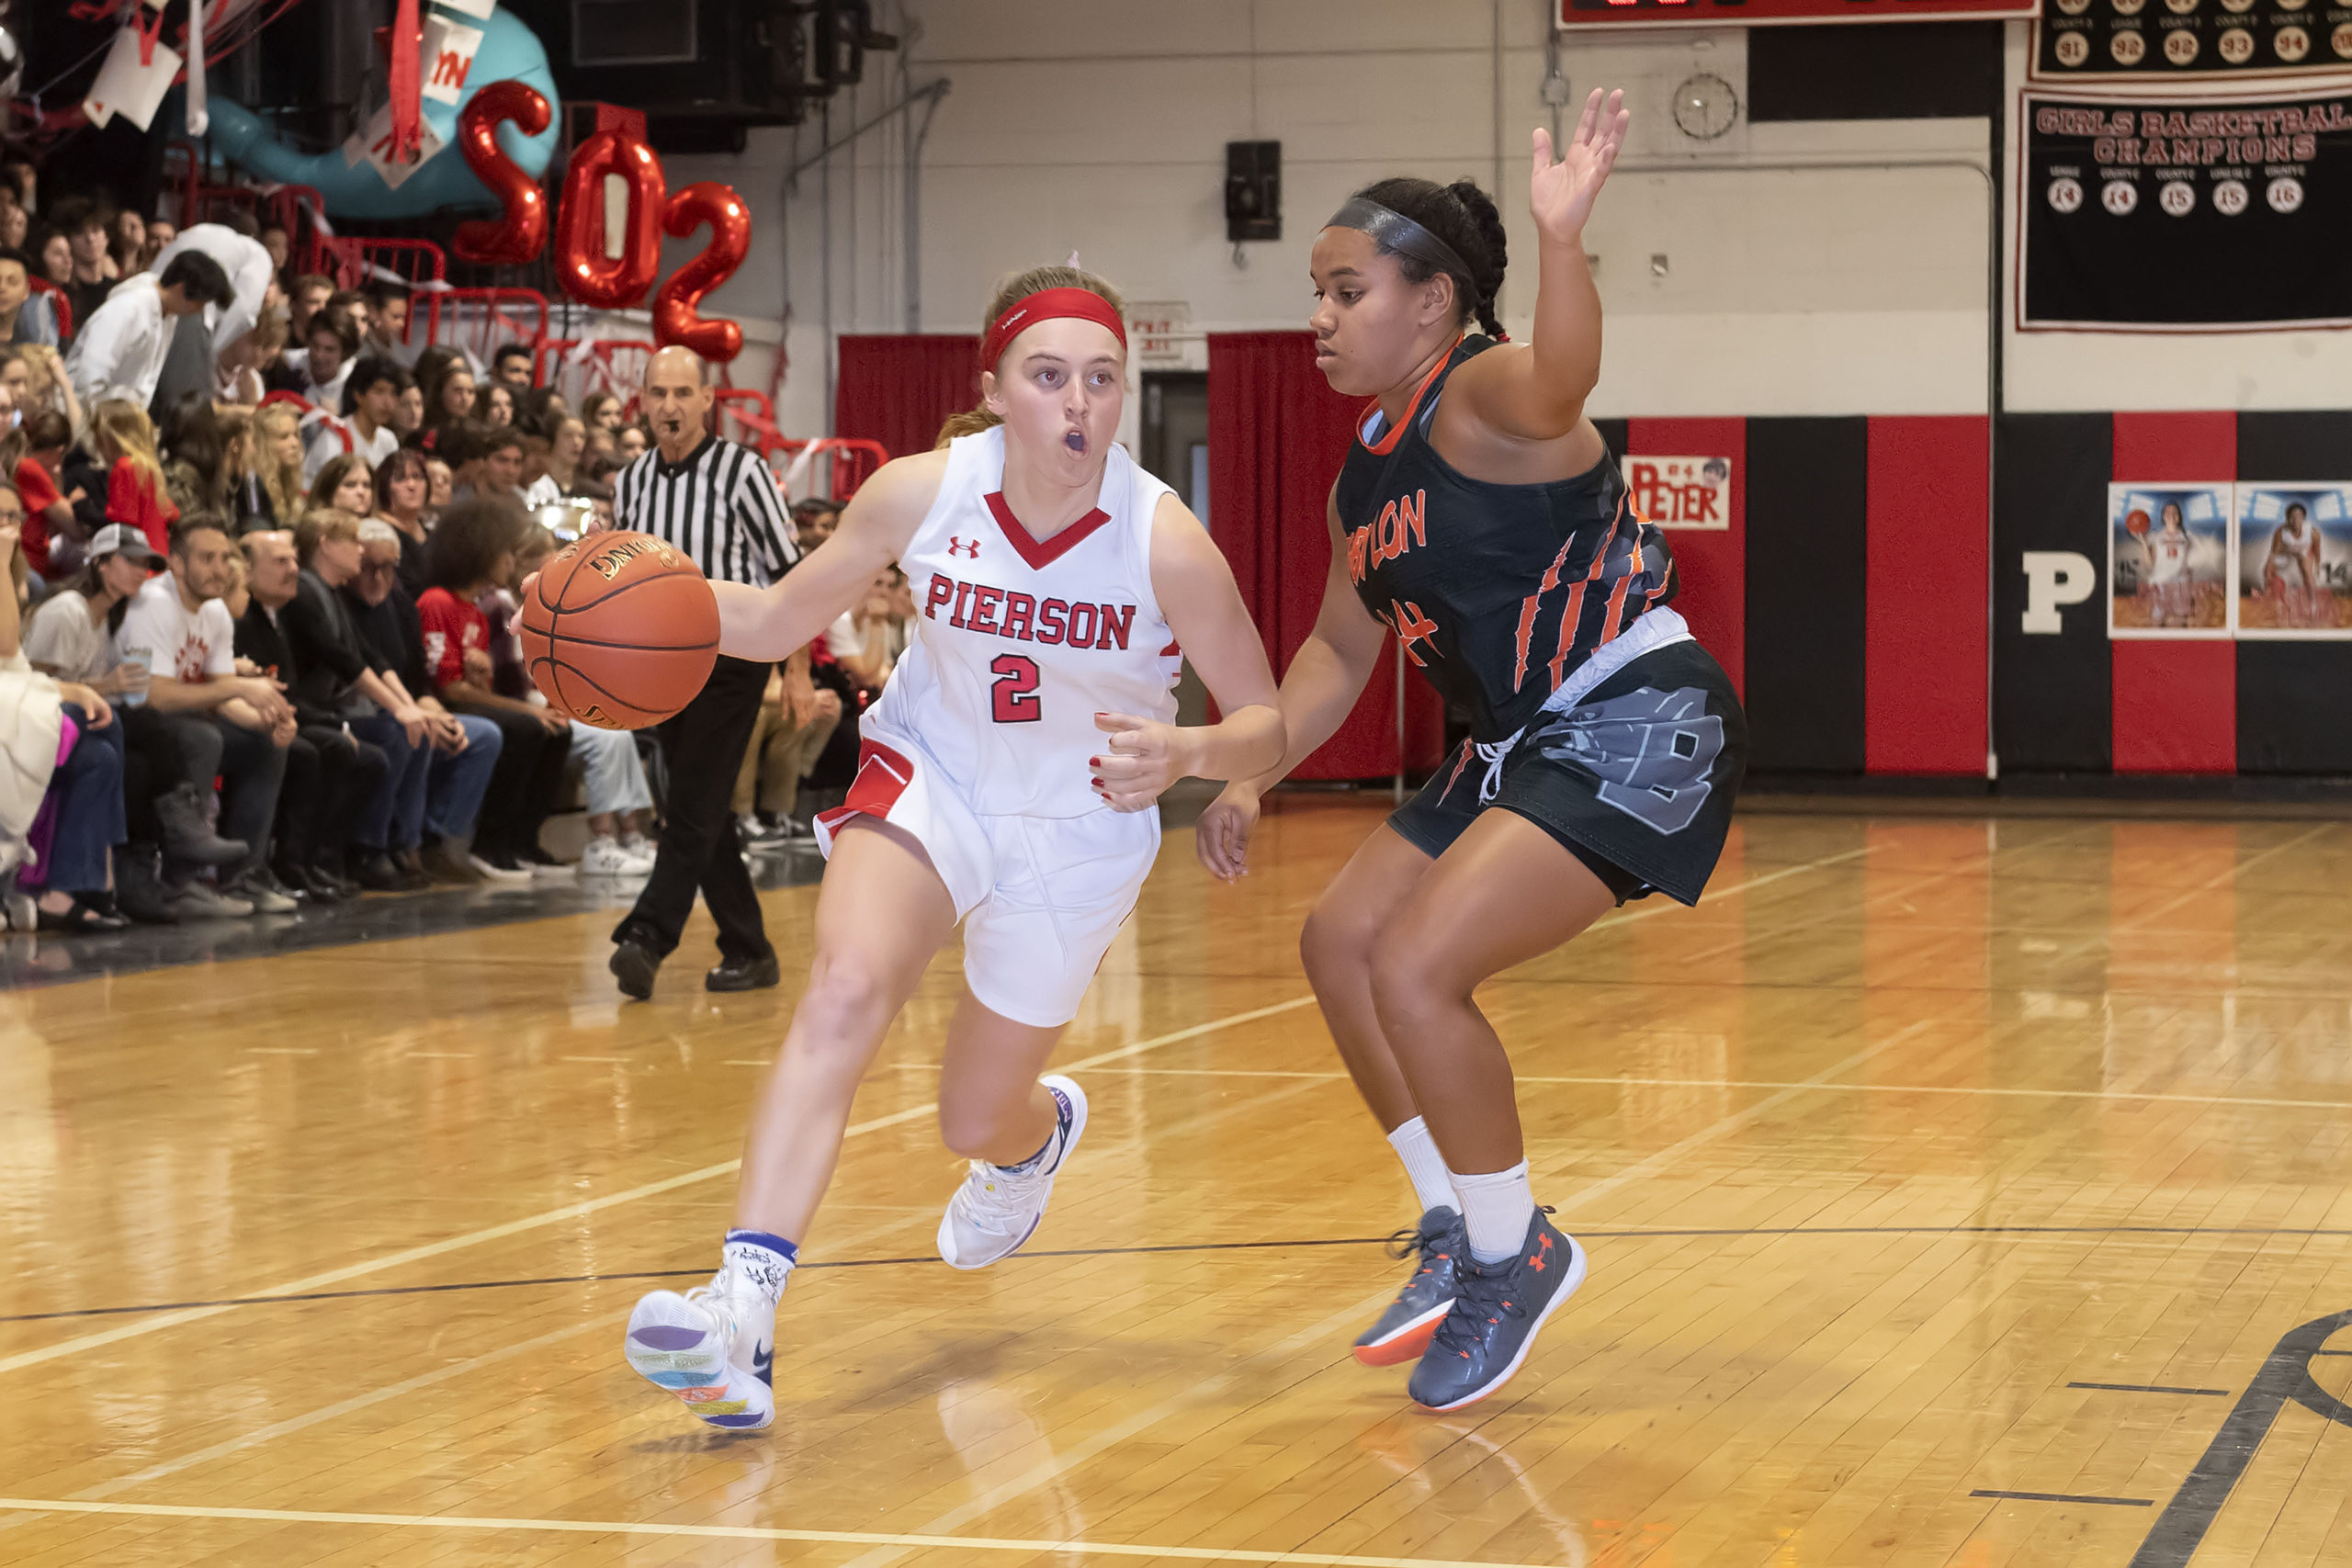 Pierson's Grace Perello drives on Babylon's Emma Ward.